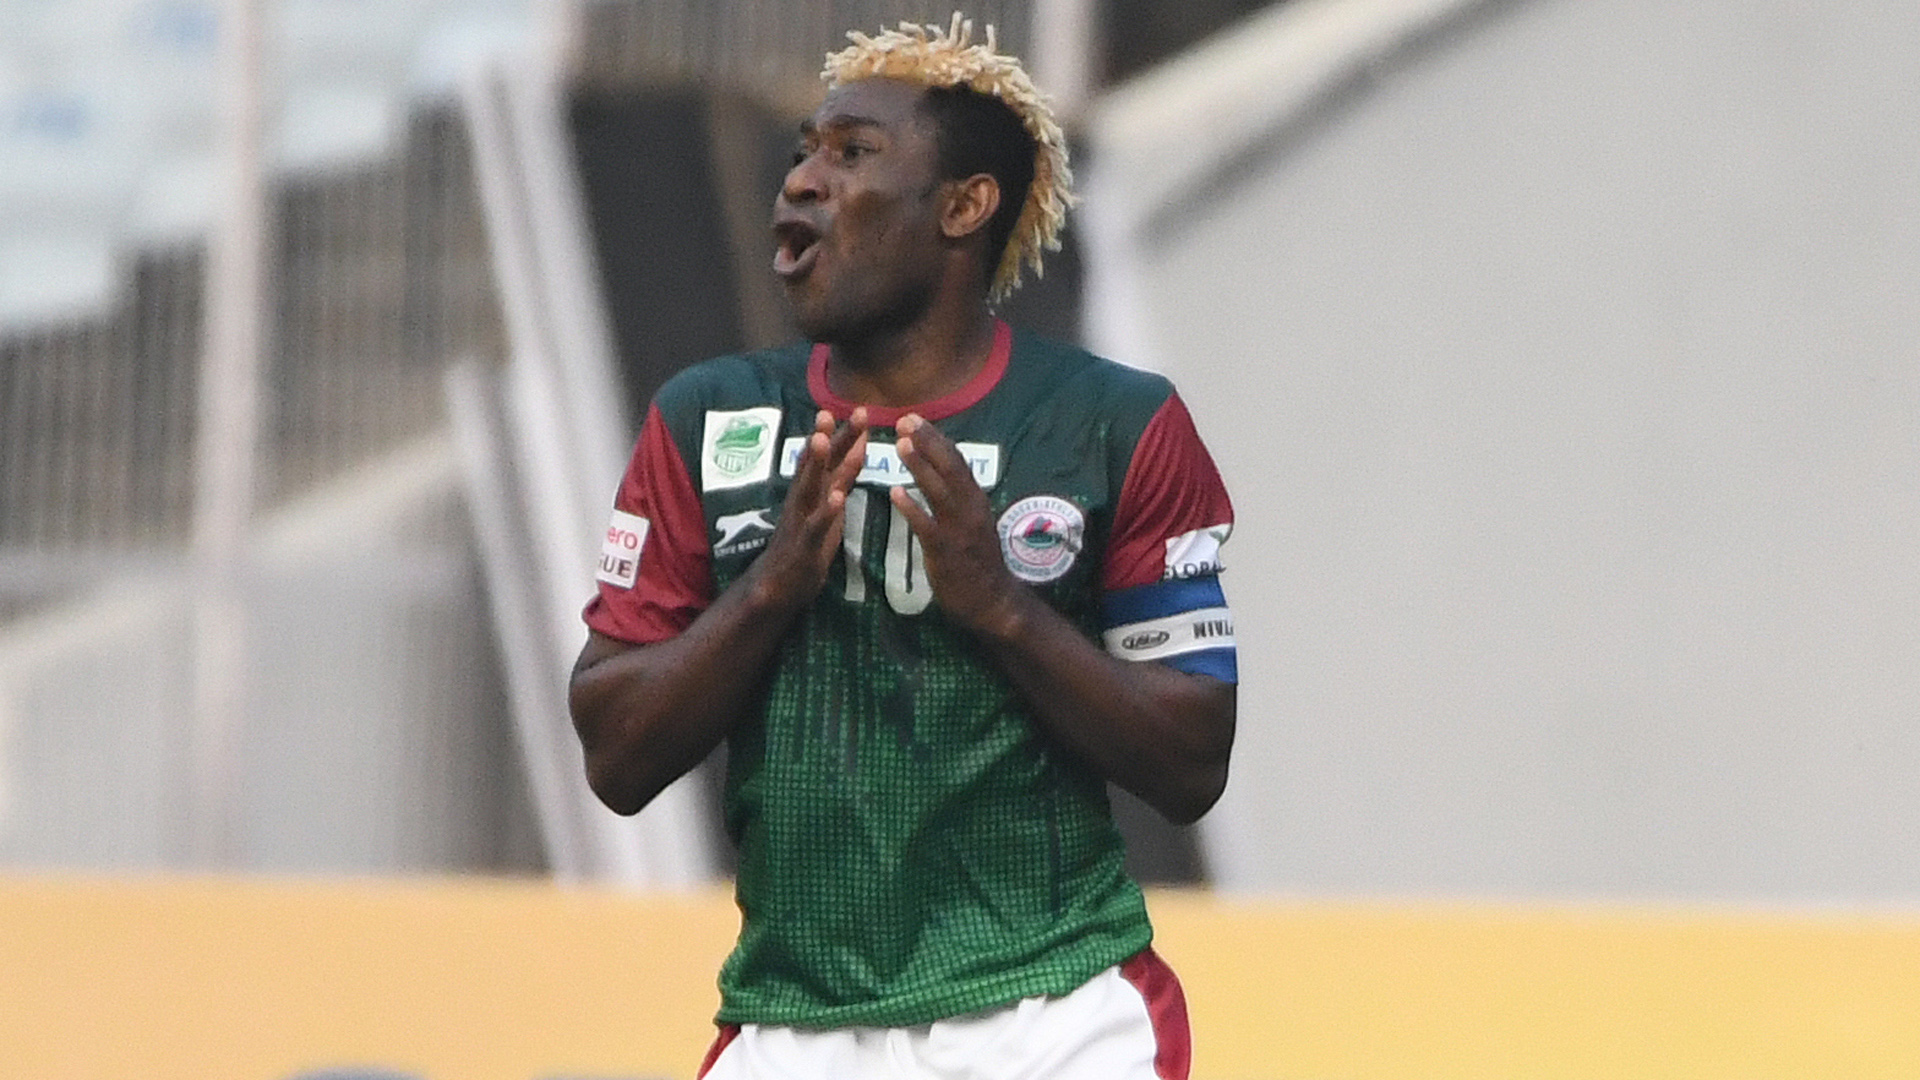 Sony Norde Mohun Bagan I-League 2017/2018